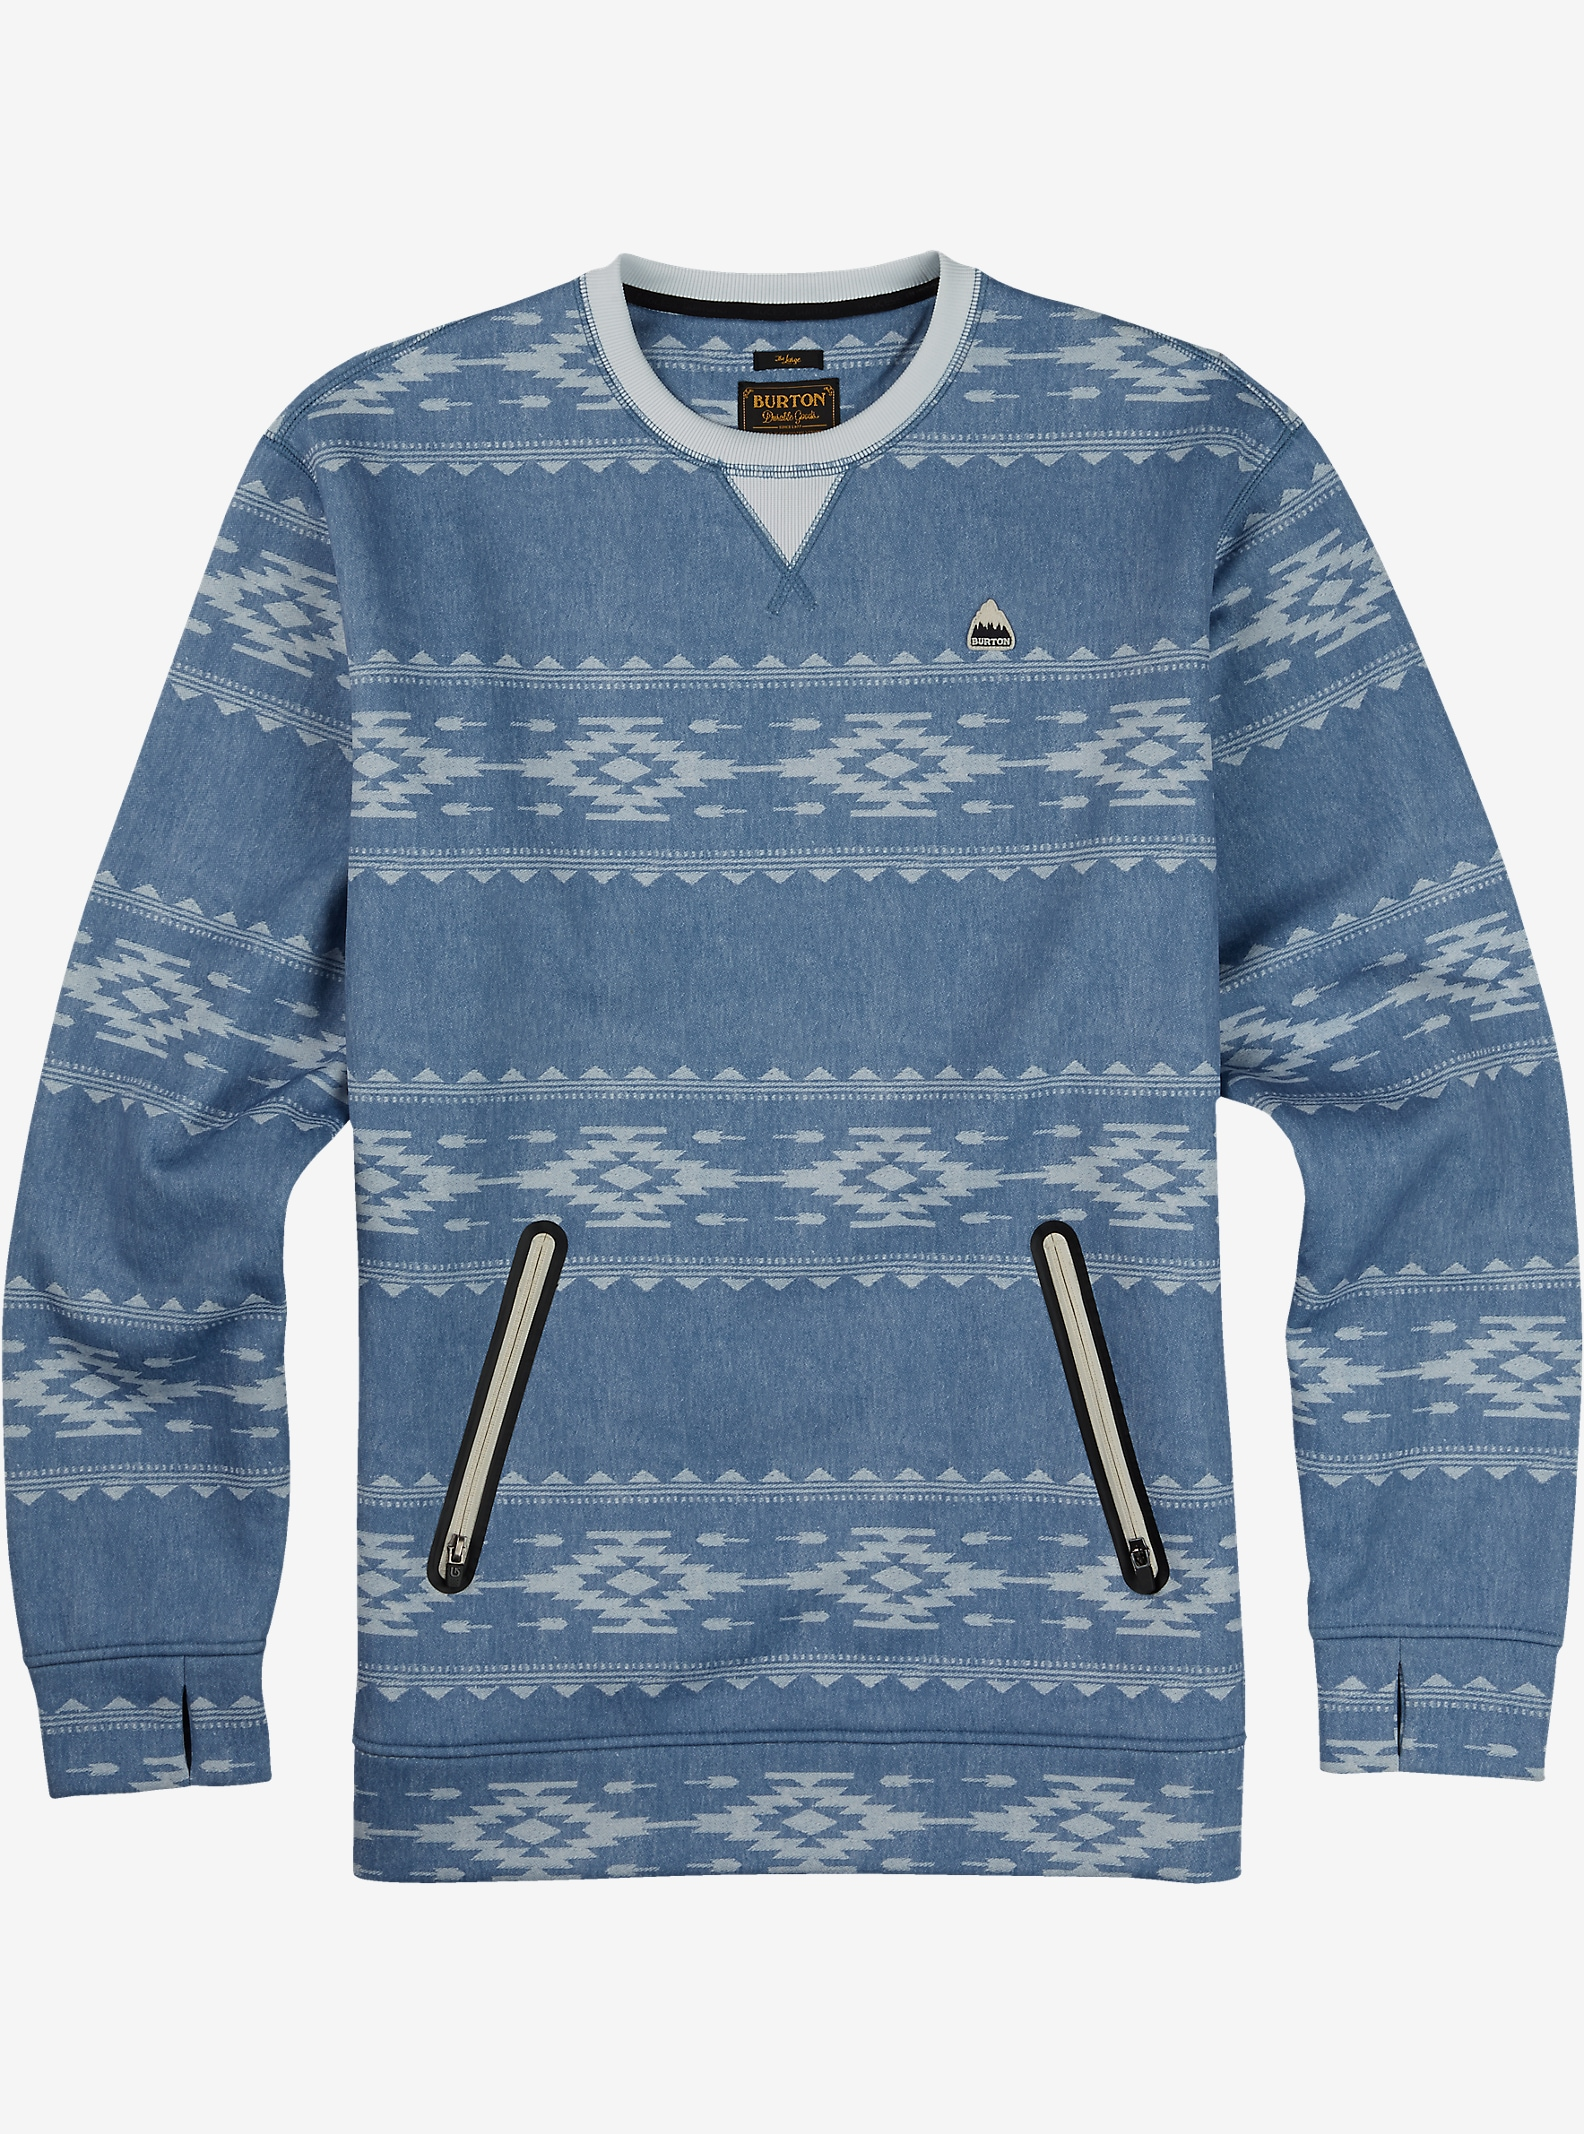 Burton Bonded Crew shown in Famish Stripe